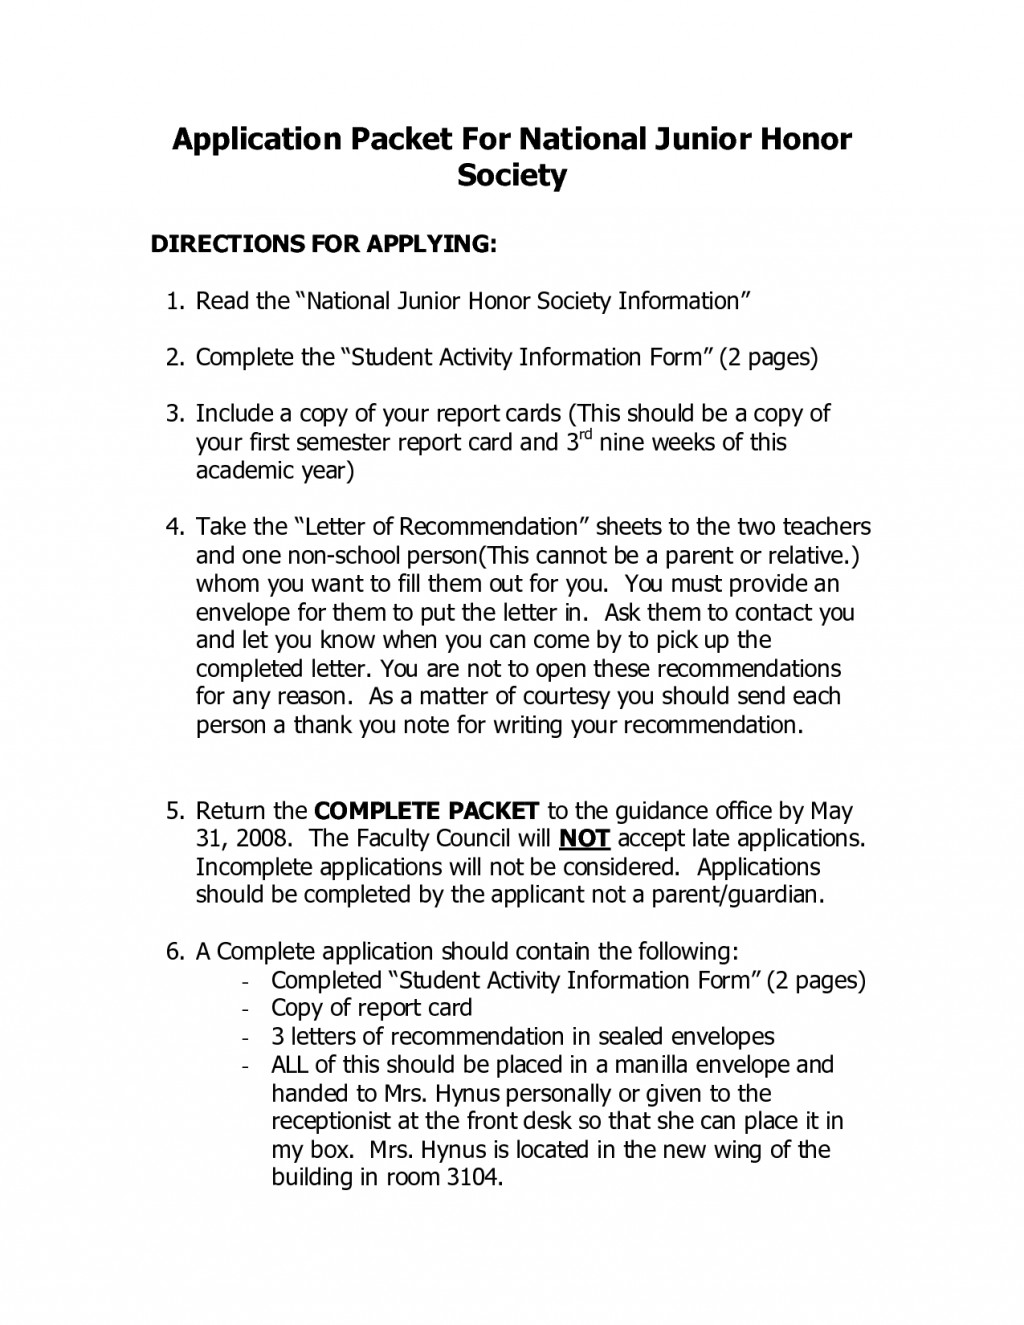 006 Essay Example National Honor Society Letter Of Recommendation For High School Student Essays L Outstanding Application Structure Examples Large